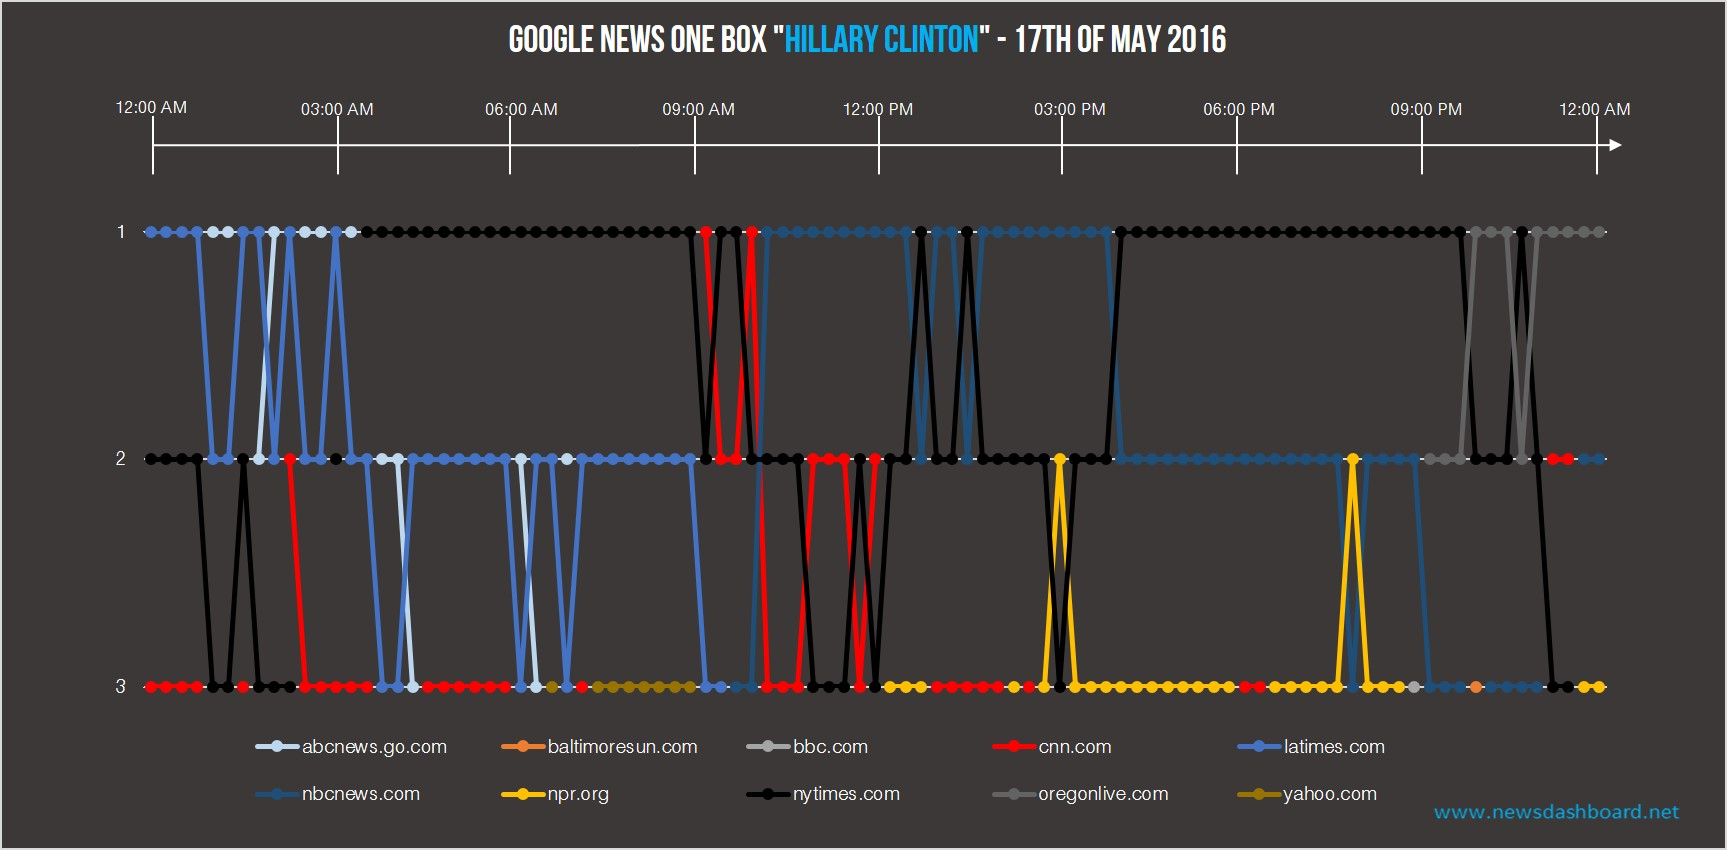 "nytimes.com was most of the day on the first position in the Google News Box for ""Hillary Clinton""."